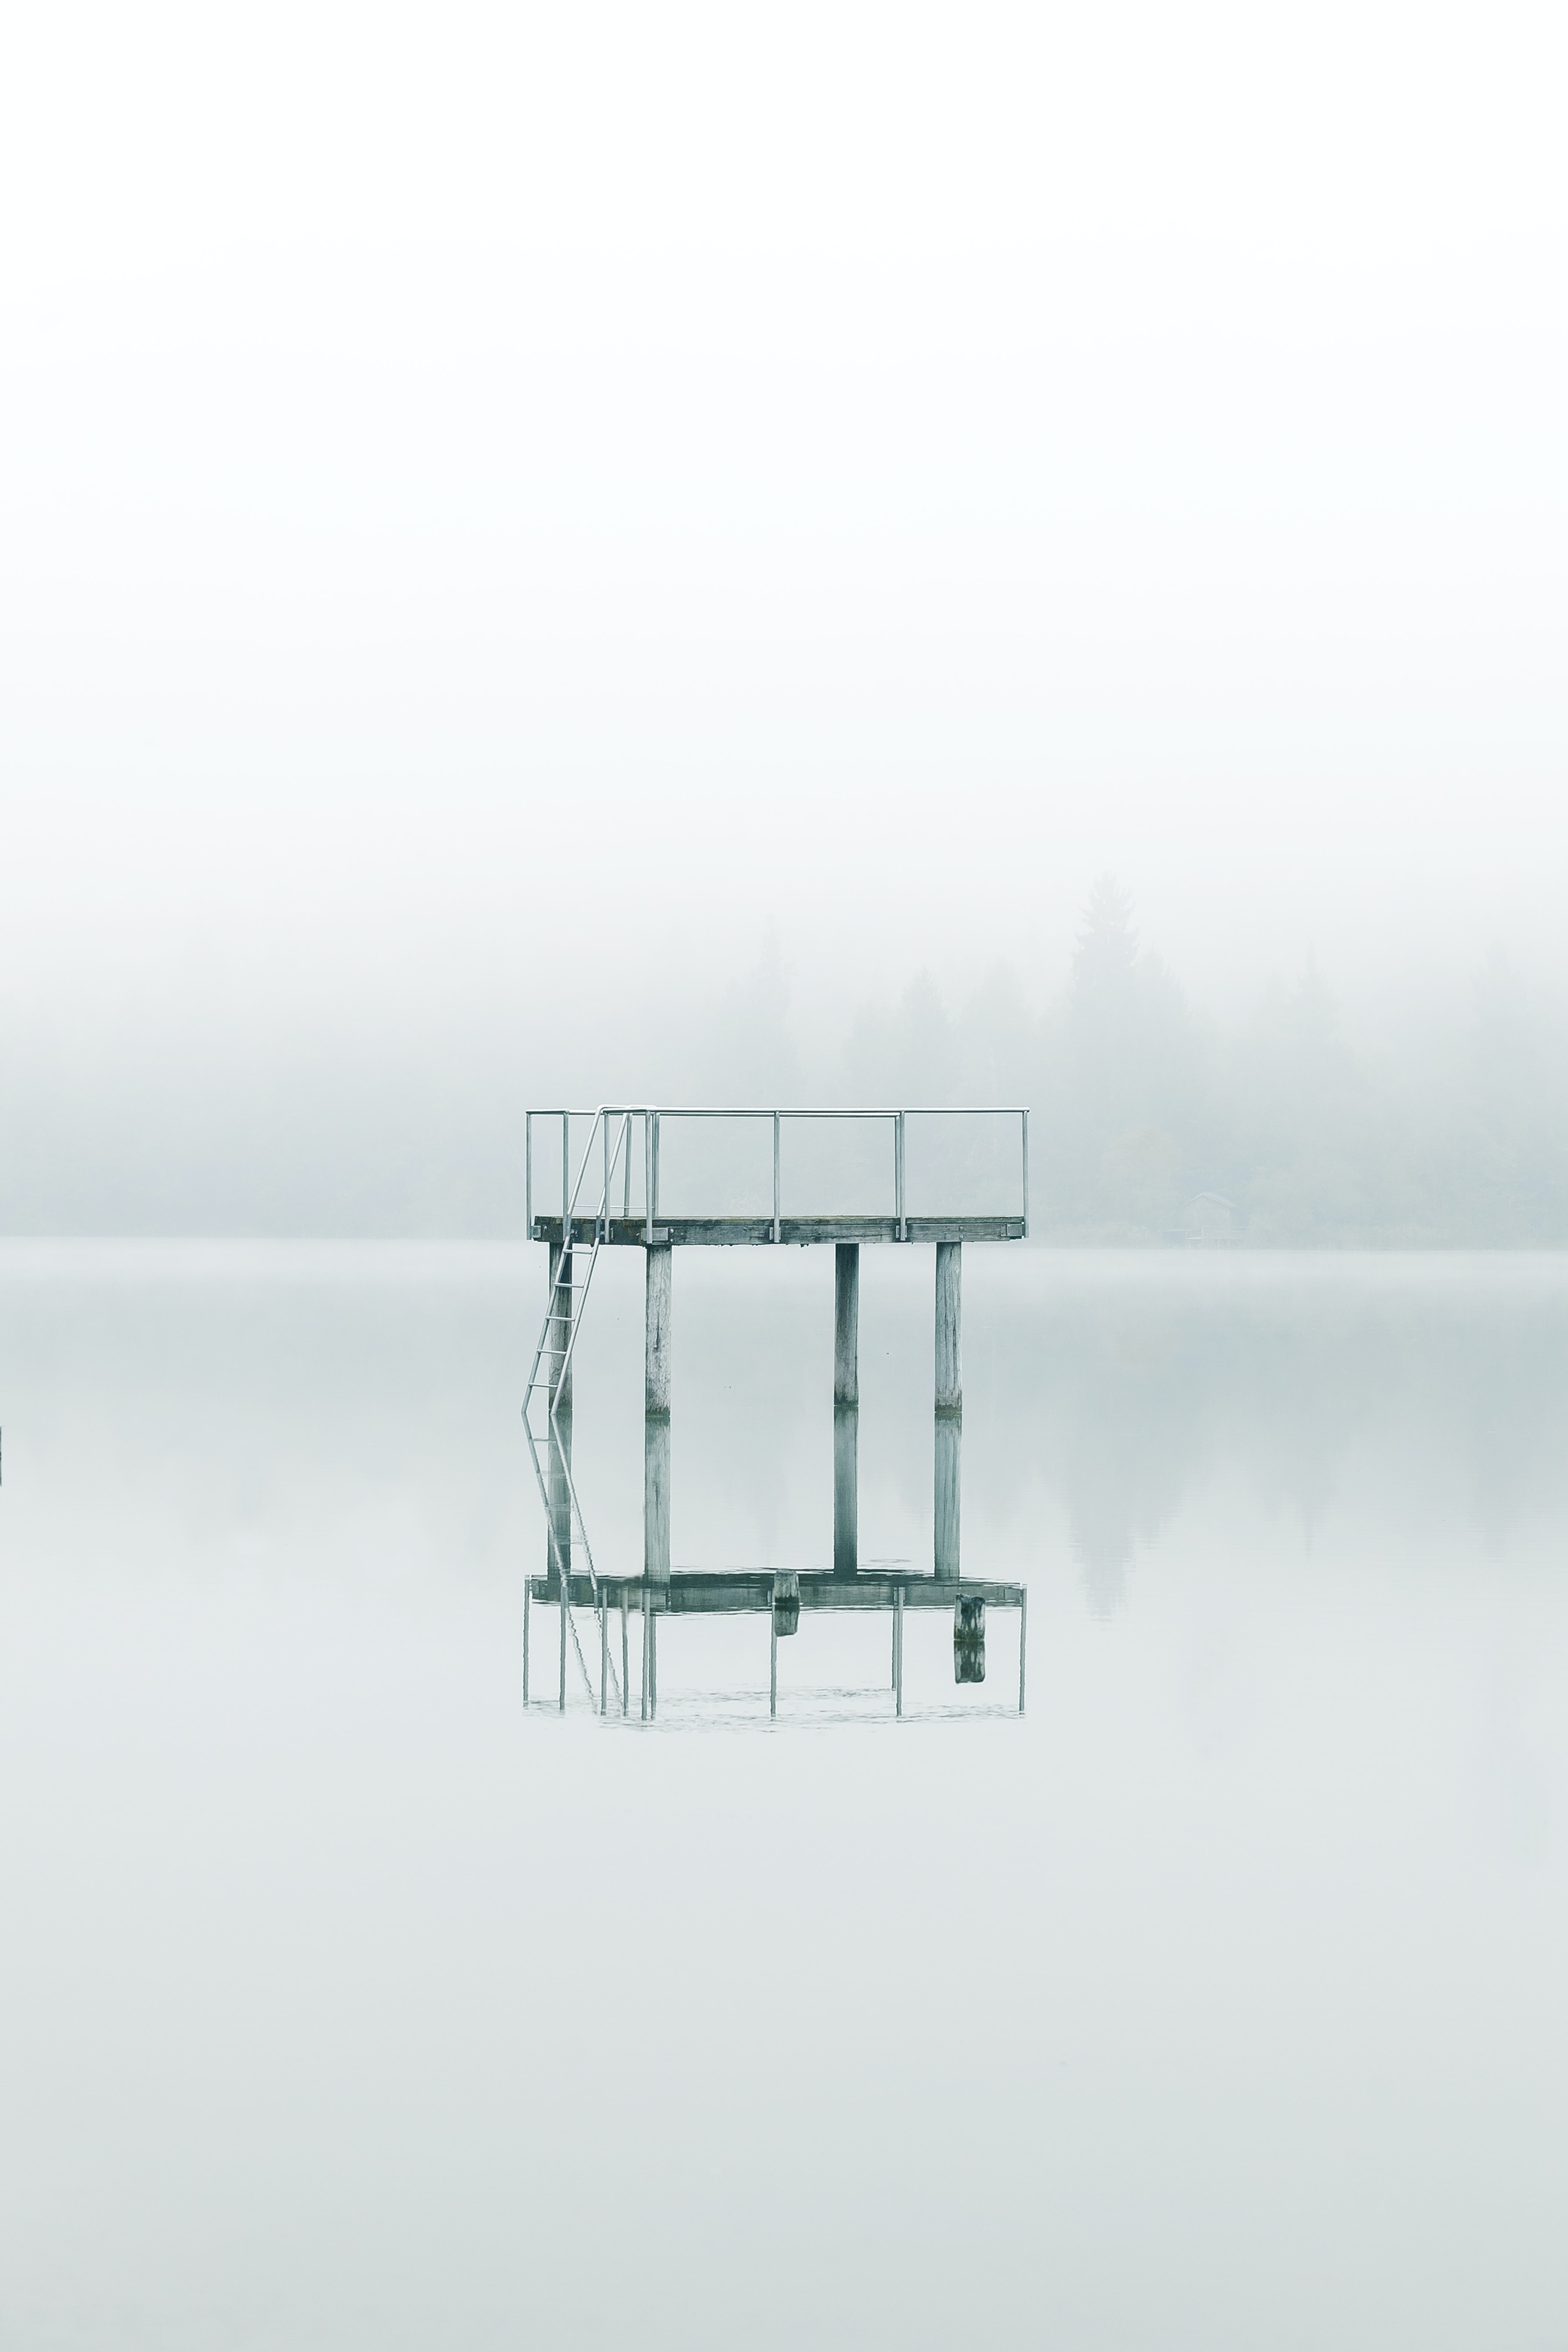 photography gray metal tower near body of water during daytime